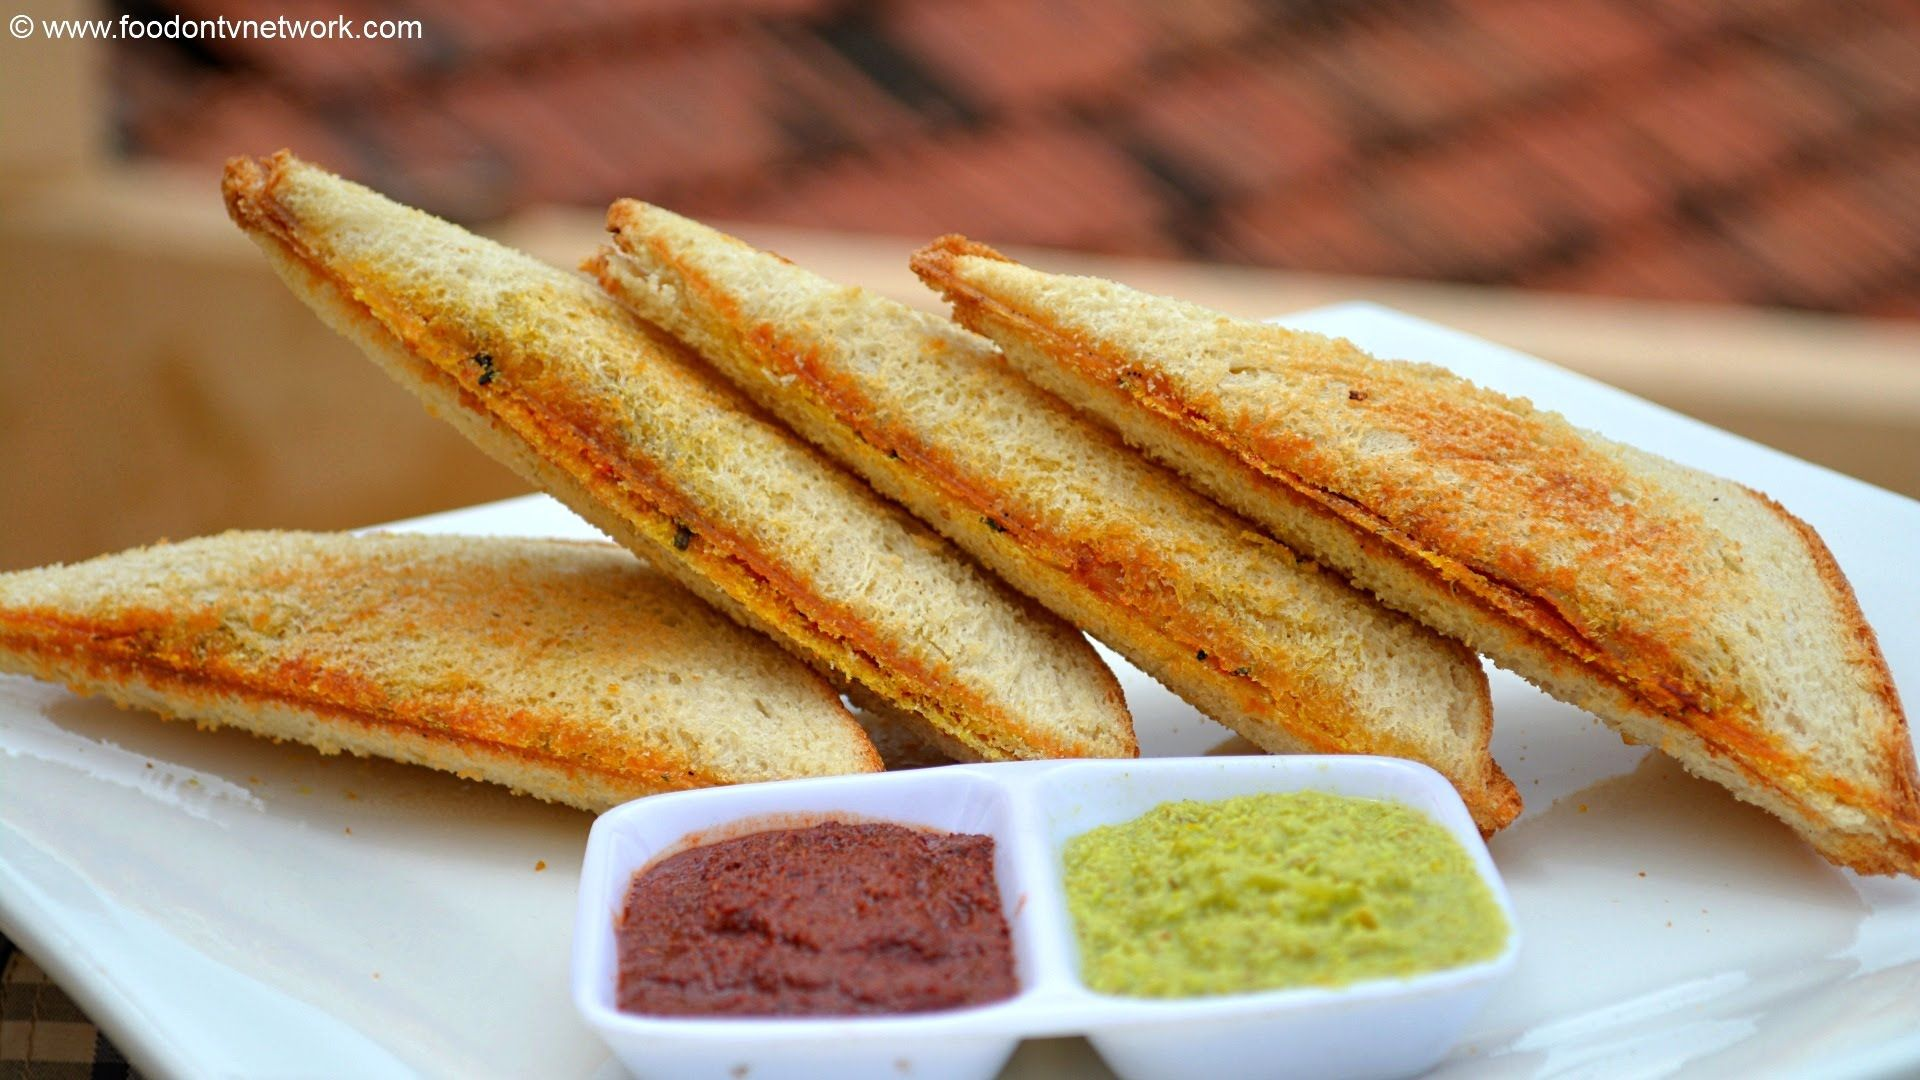 Bombay toast recipe how to make masala toast quick easy fast bombay toast is one of the most popular indian street fast food sandwich recipe which is very simple but delicious in taste most of the indian fast food forumfinder Image collections